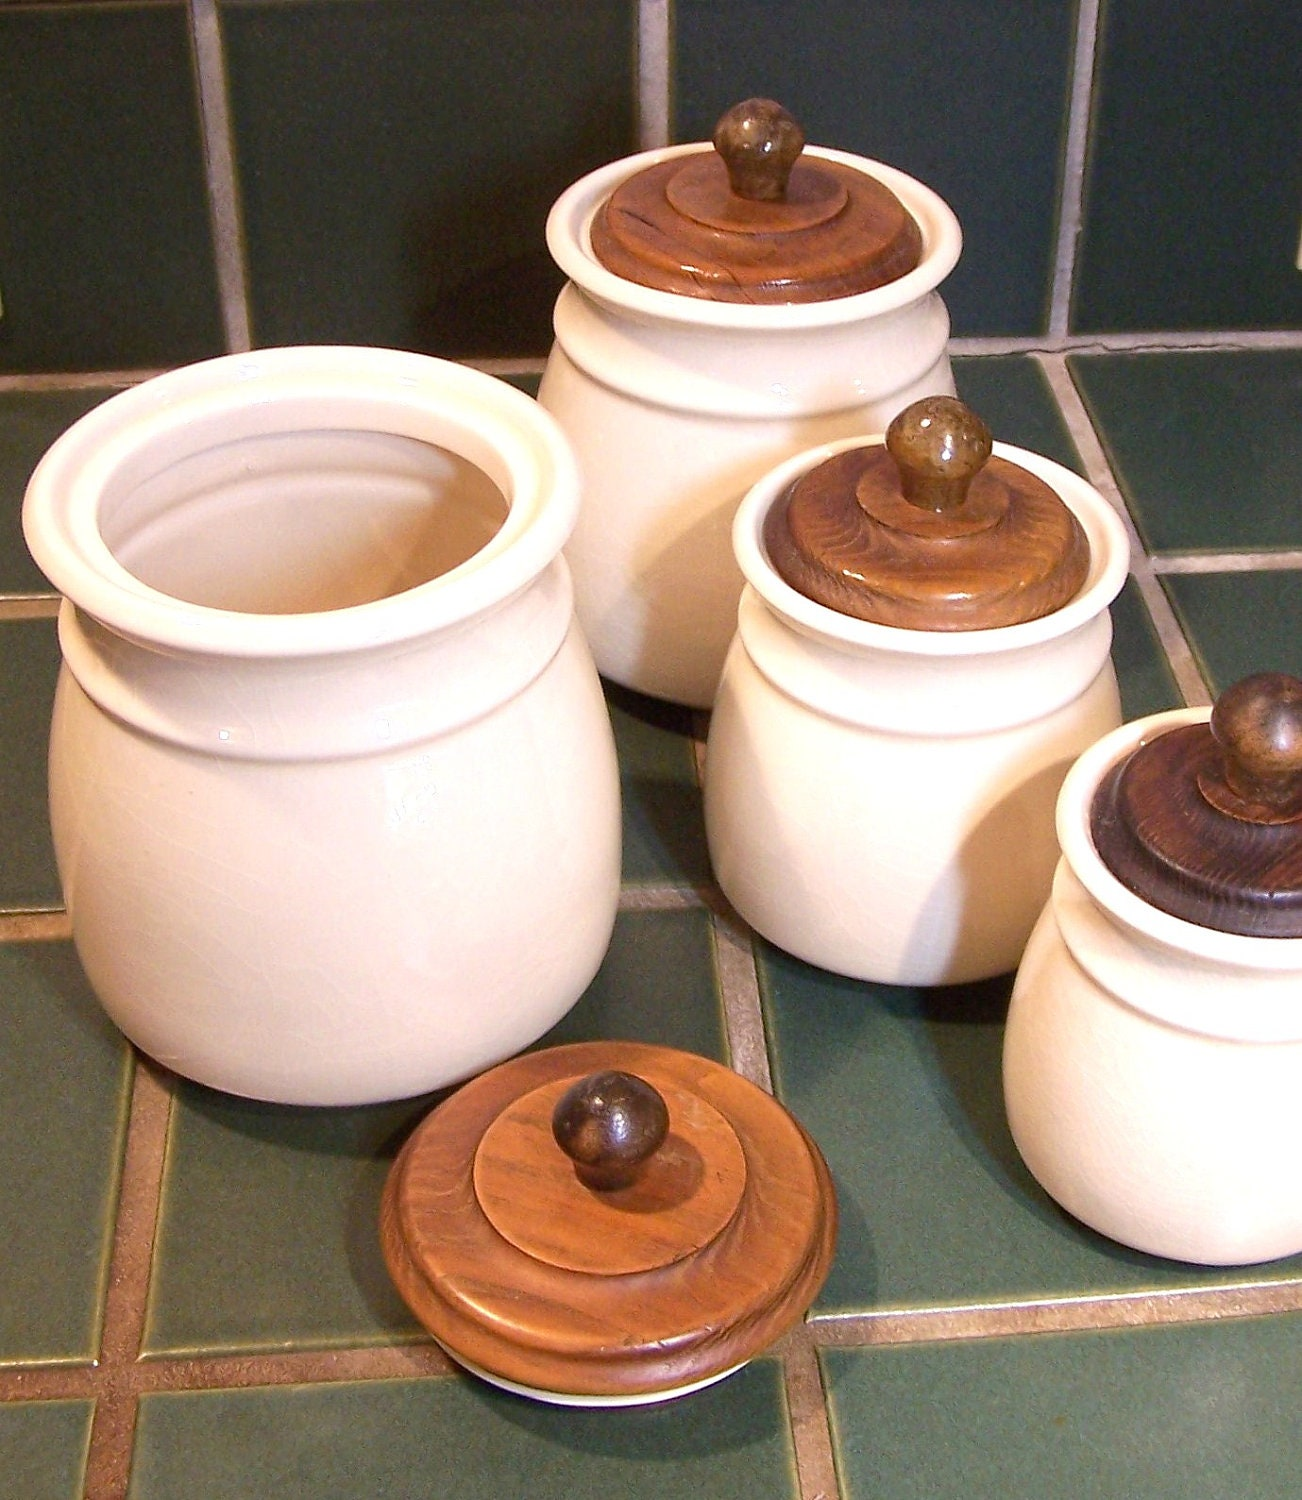 Kitchen Canisters Ceramic Sets: Vintage Ceramic Canister Set With Wooden Lids Creamy Beige